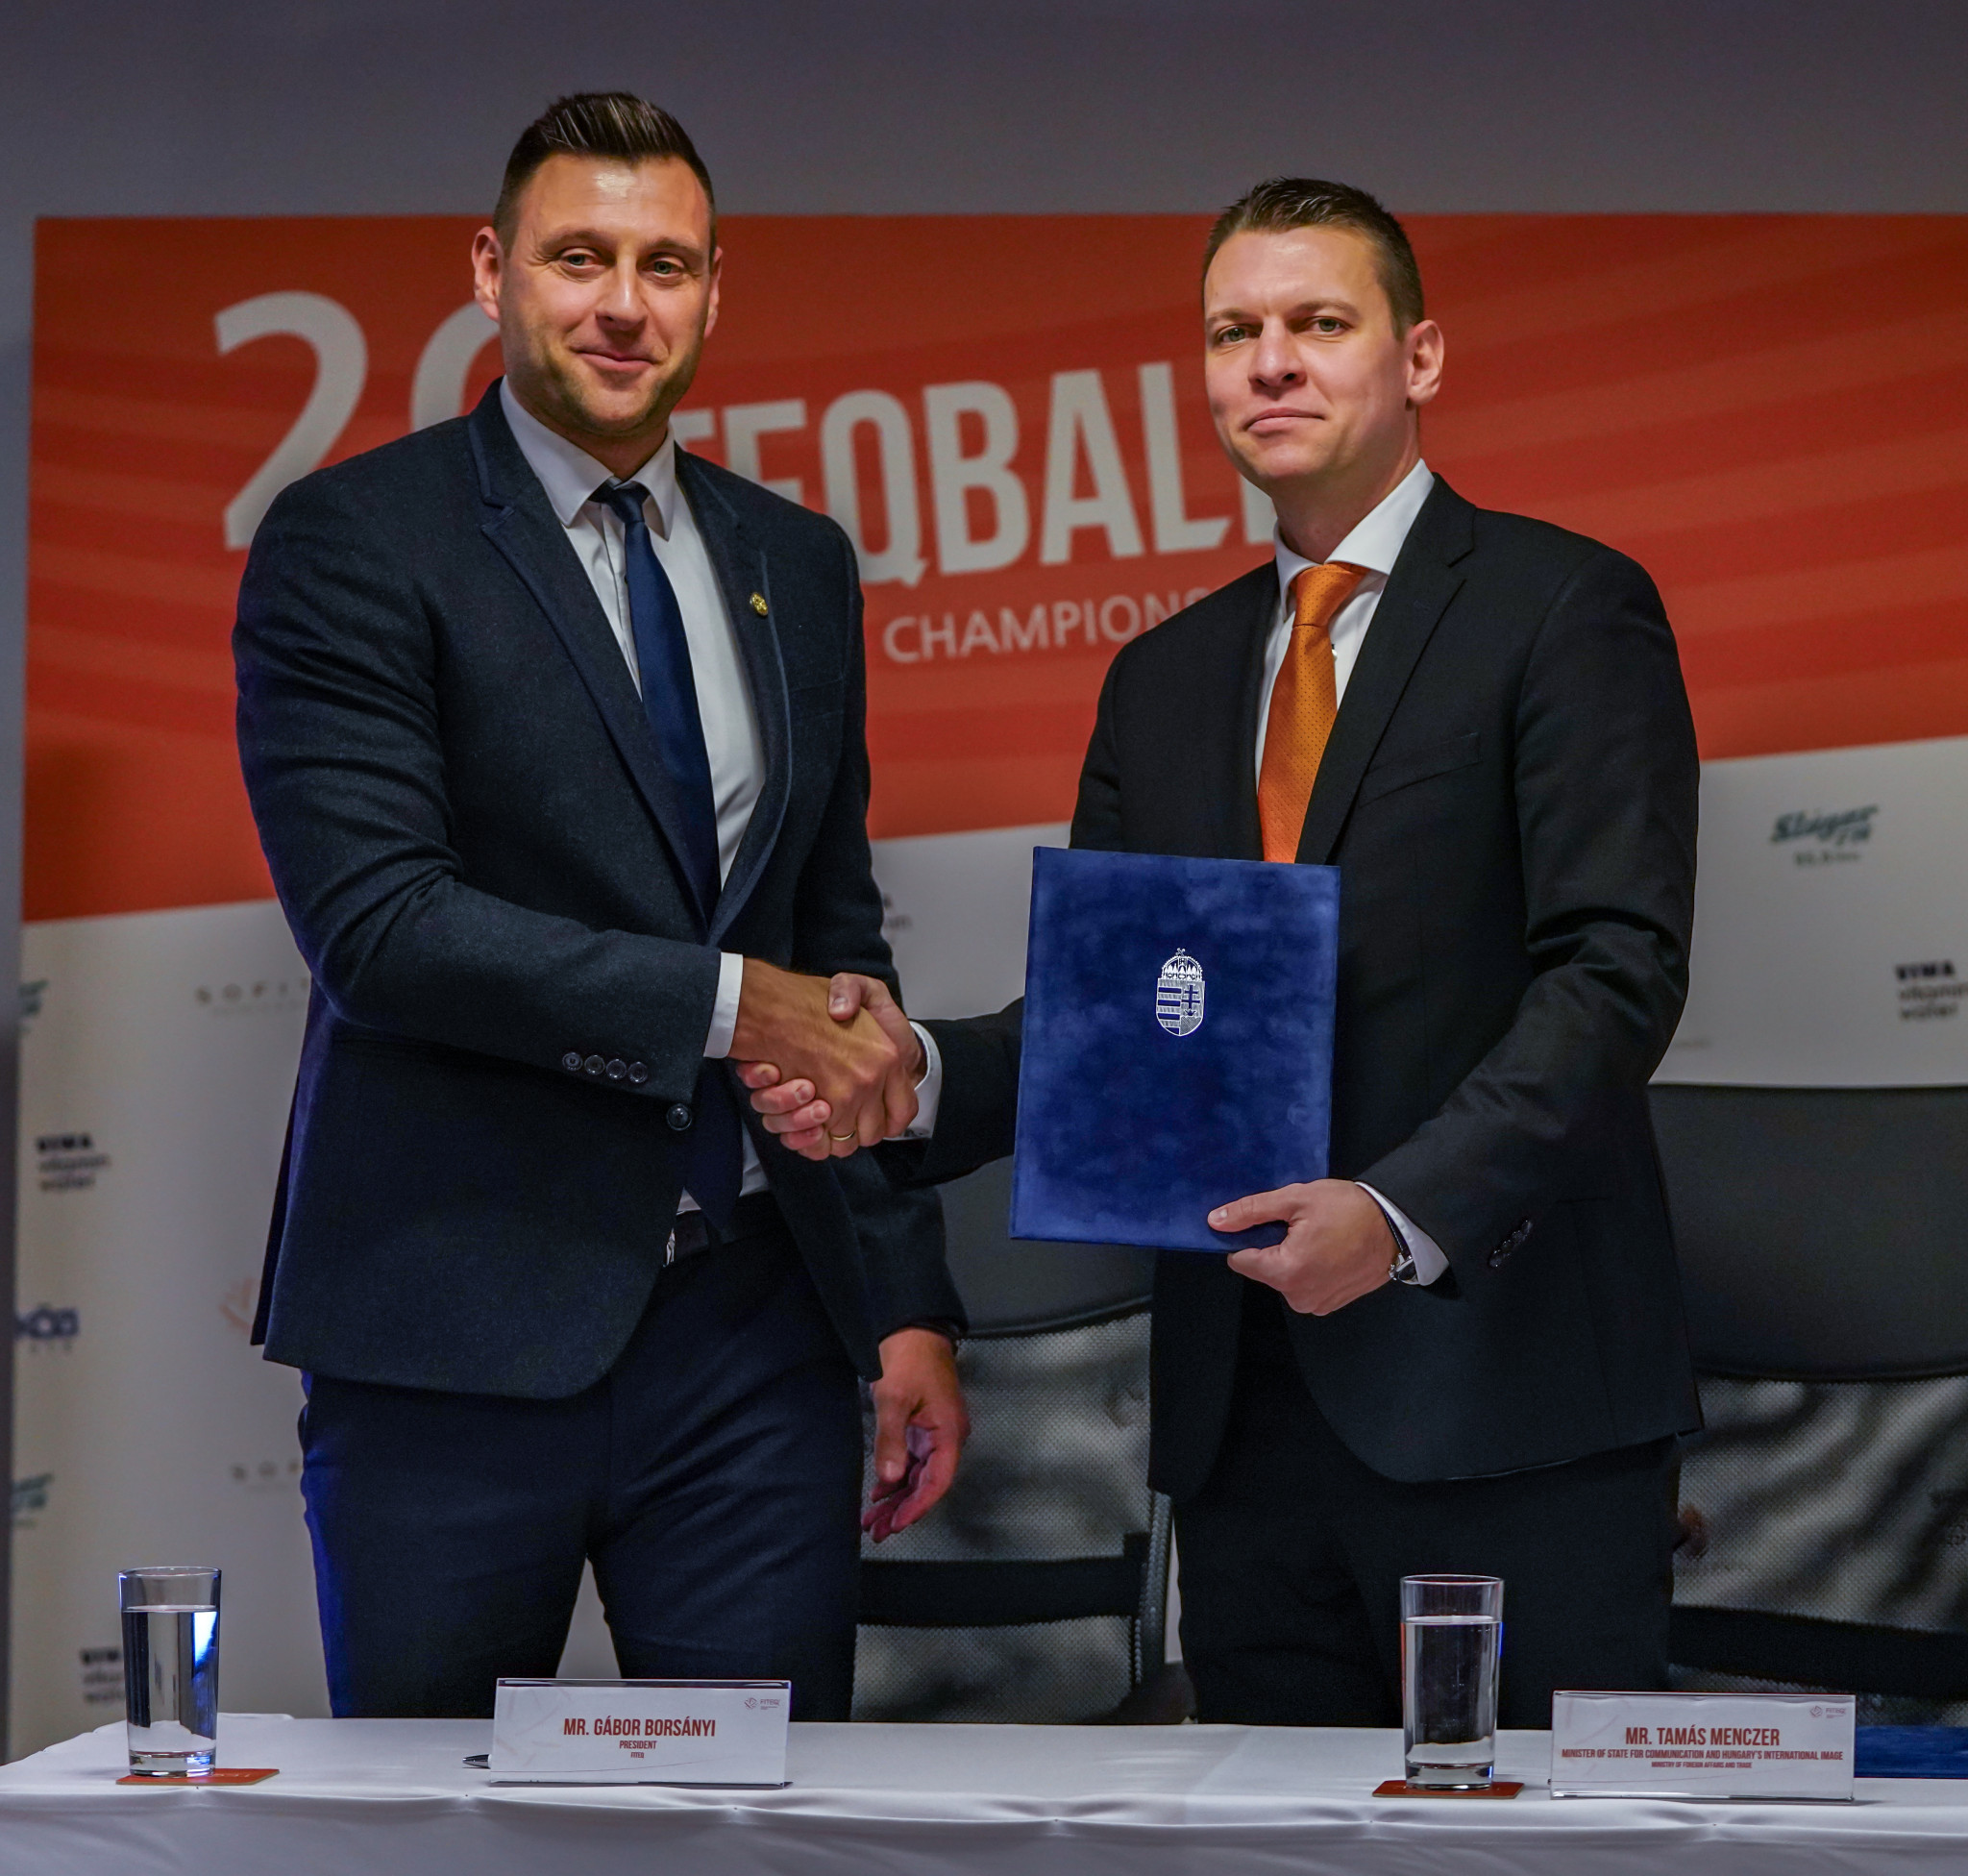 FITEQ President Gábor Borsányi and Tamás Menczer, State Secretary for Information and International Representation of Hungary, signed a strategic cooperation agreement during the press conference ©FITEQ